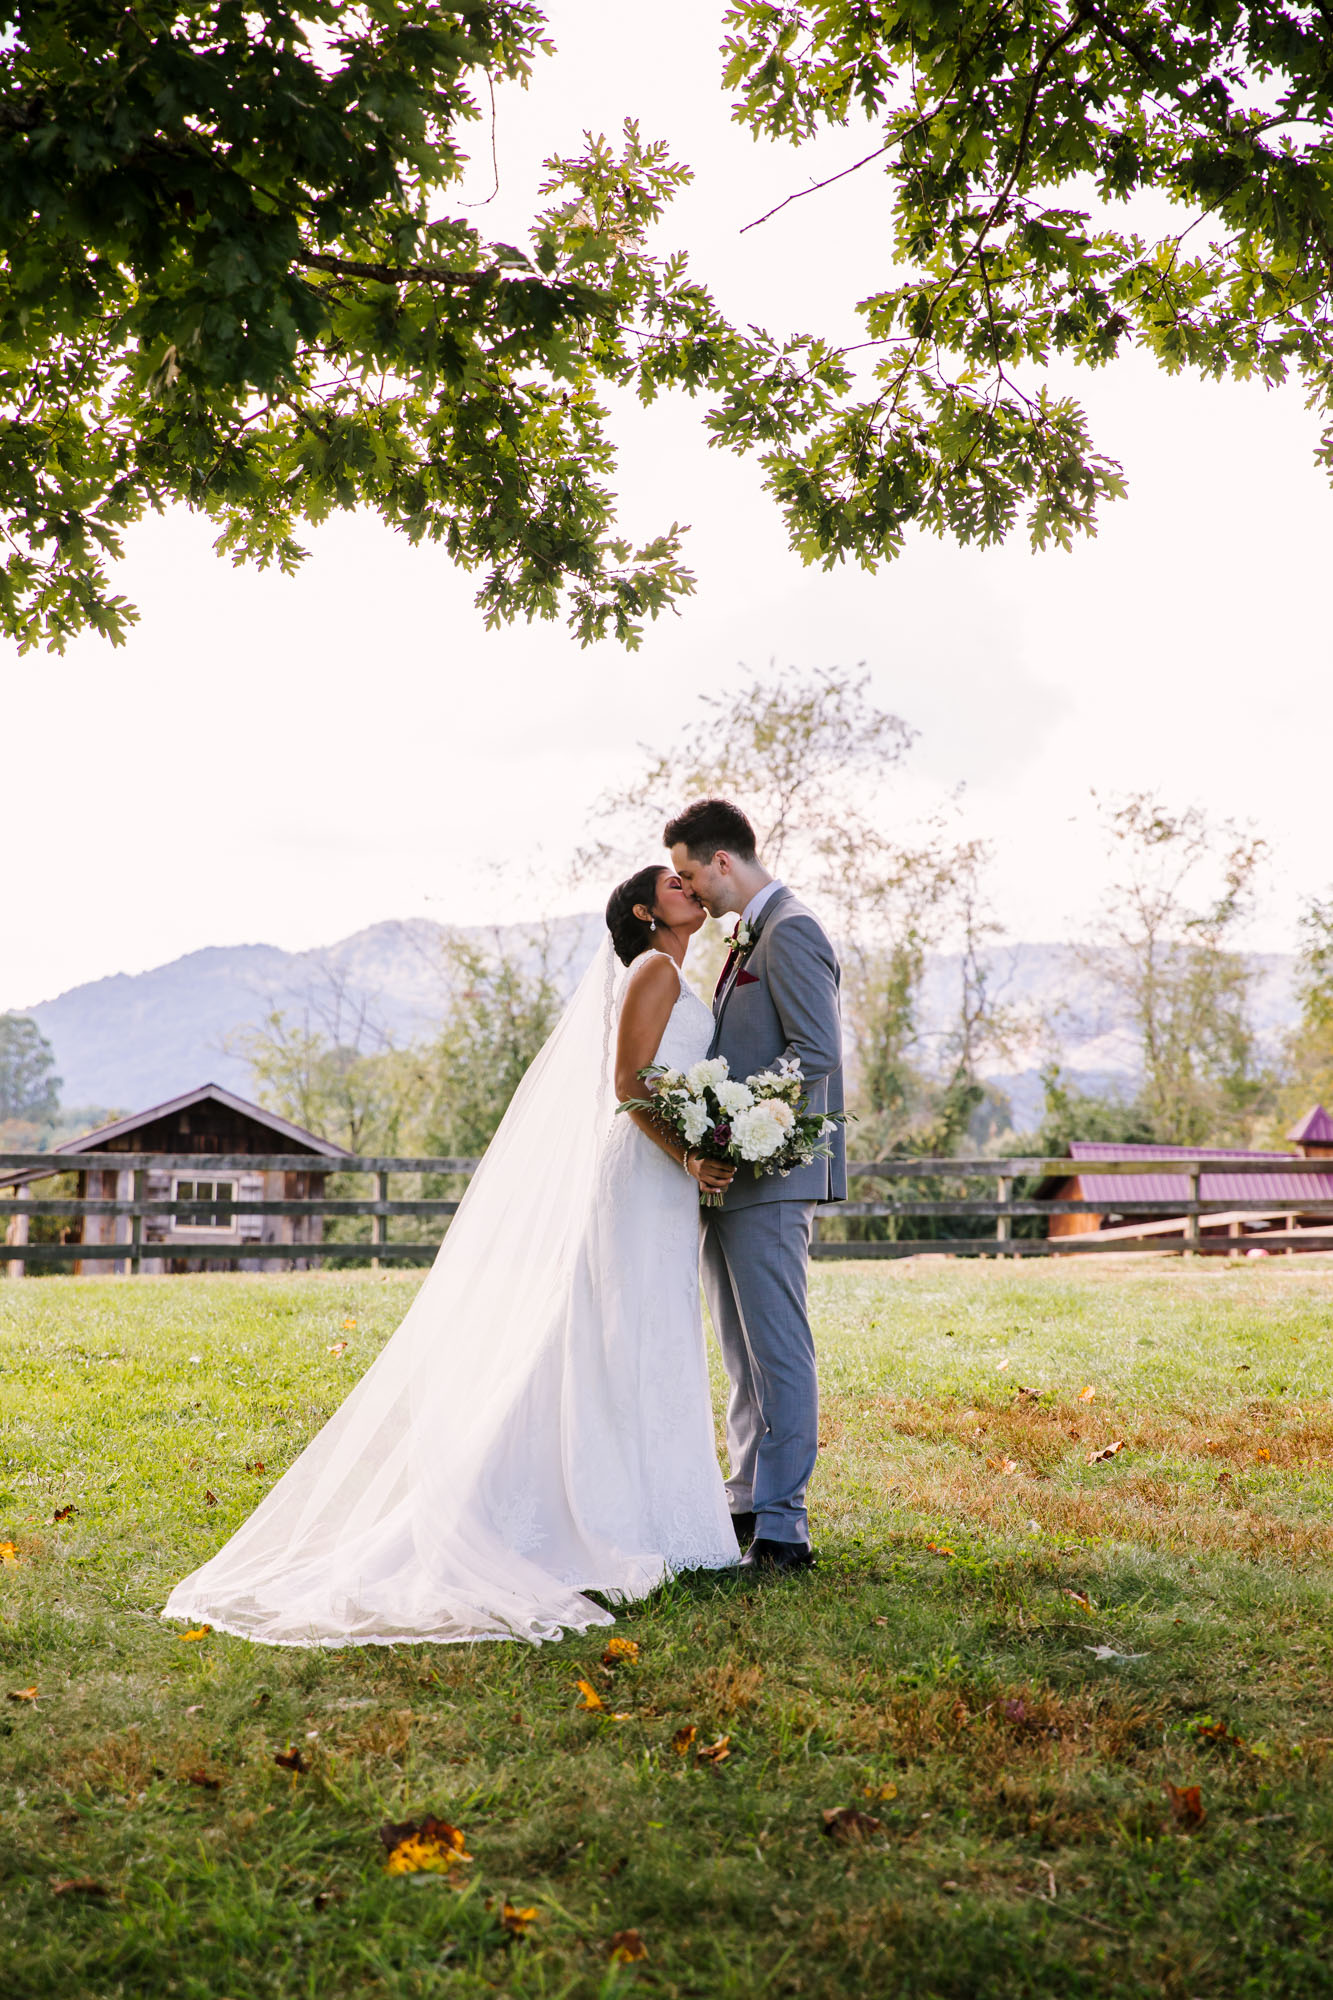 Waynesville NC Wedding Photography | Bride and Groom Portrait on the Farm